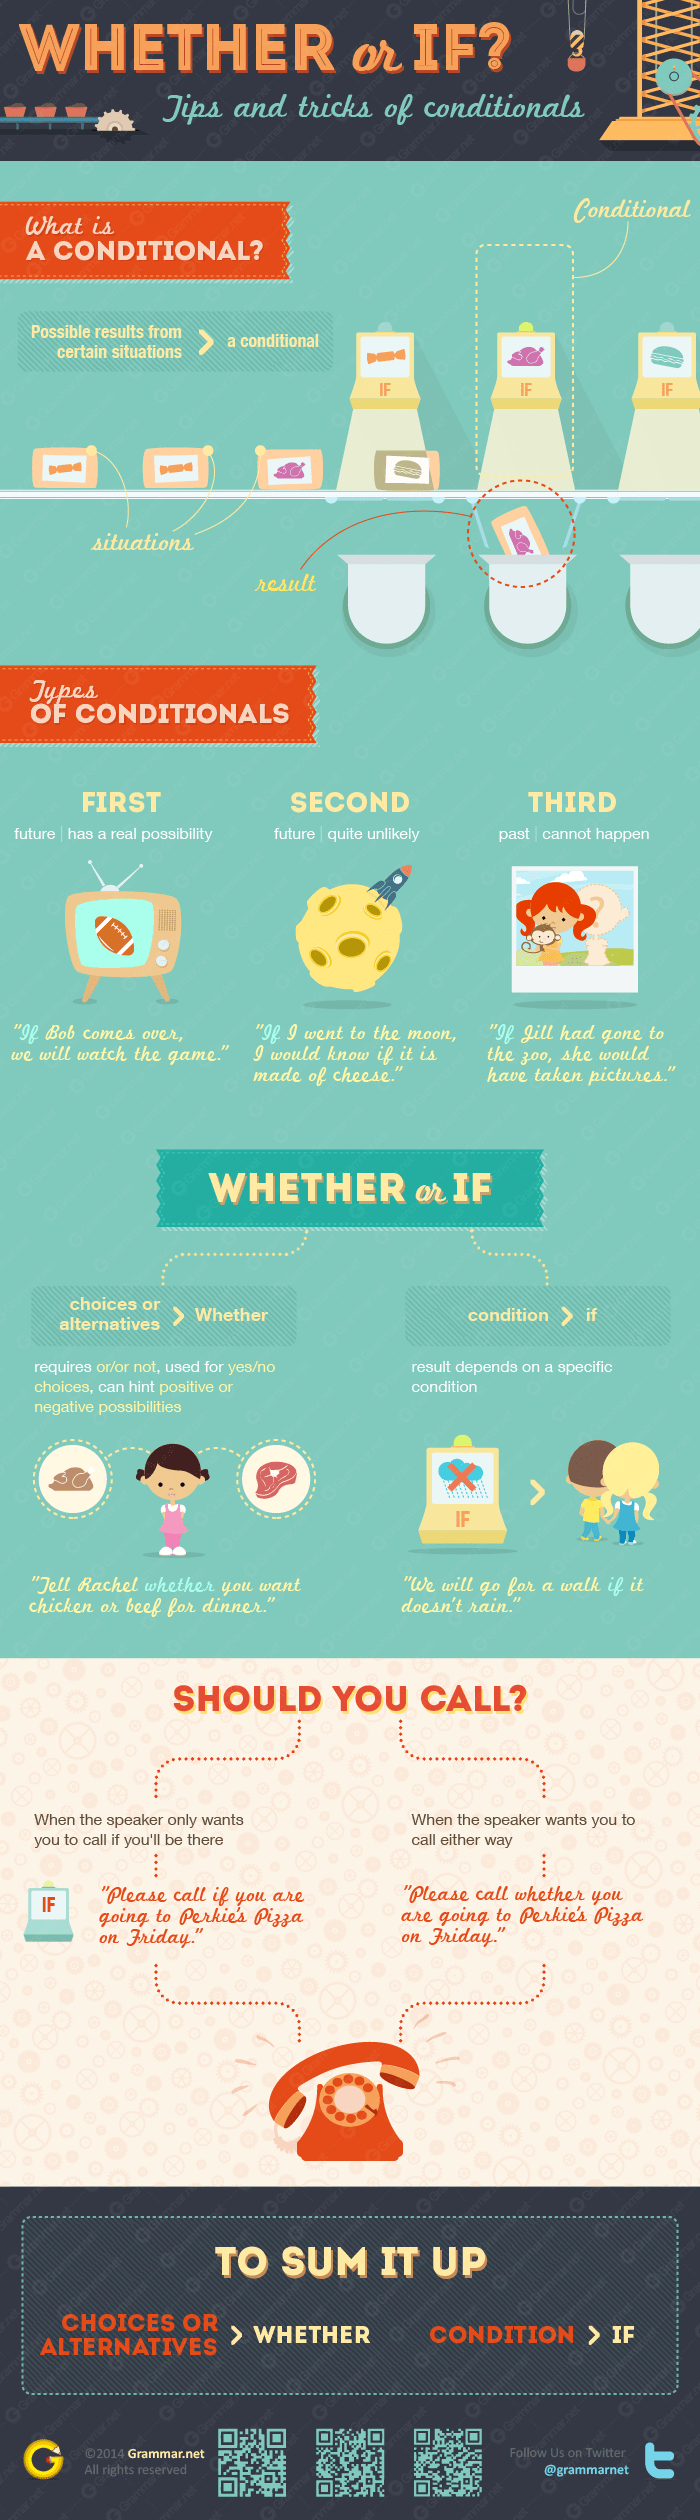 whether if - infographic_small-01-2